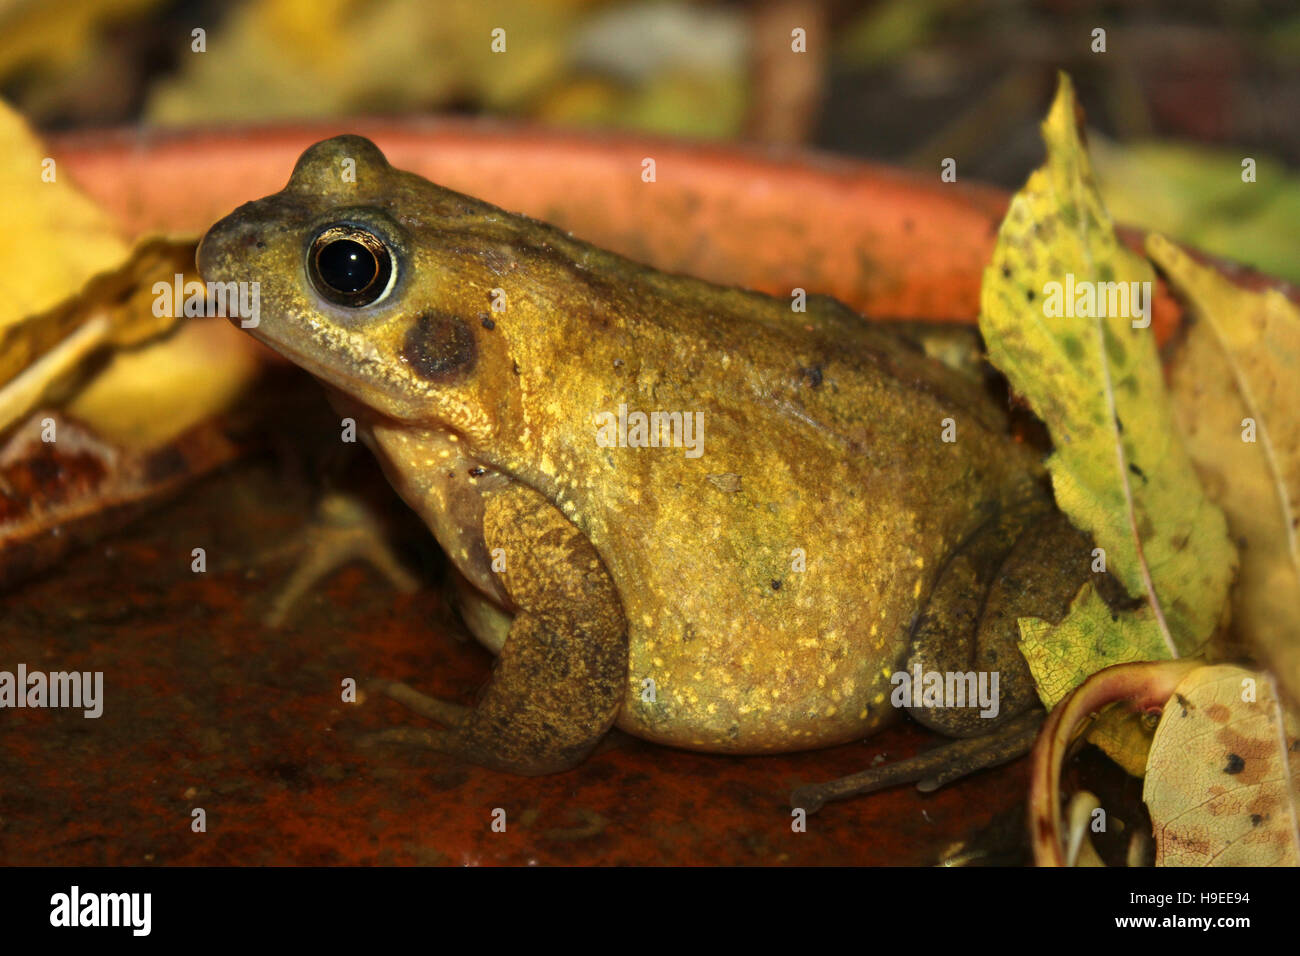 Common Frog Sat Amongst Autumn Leaves In A Garden Water Tray - Stock Image